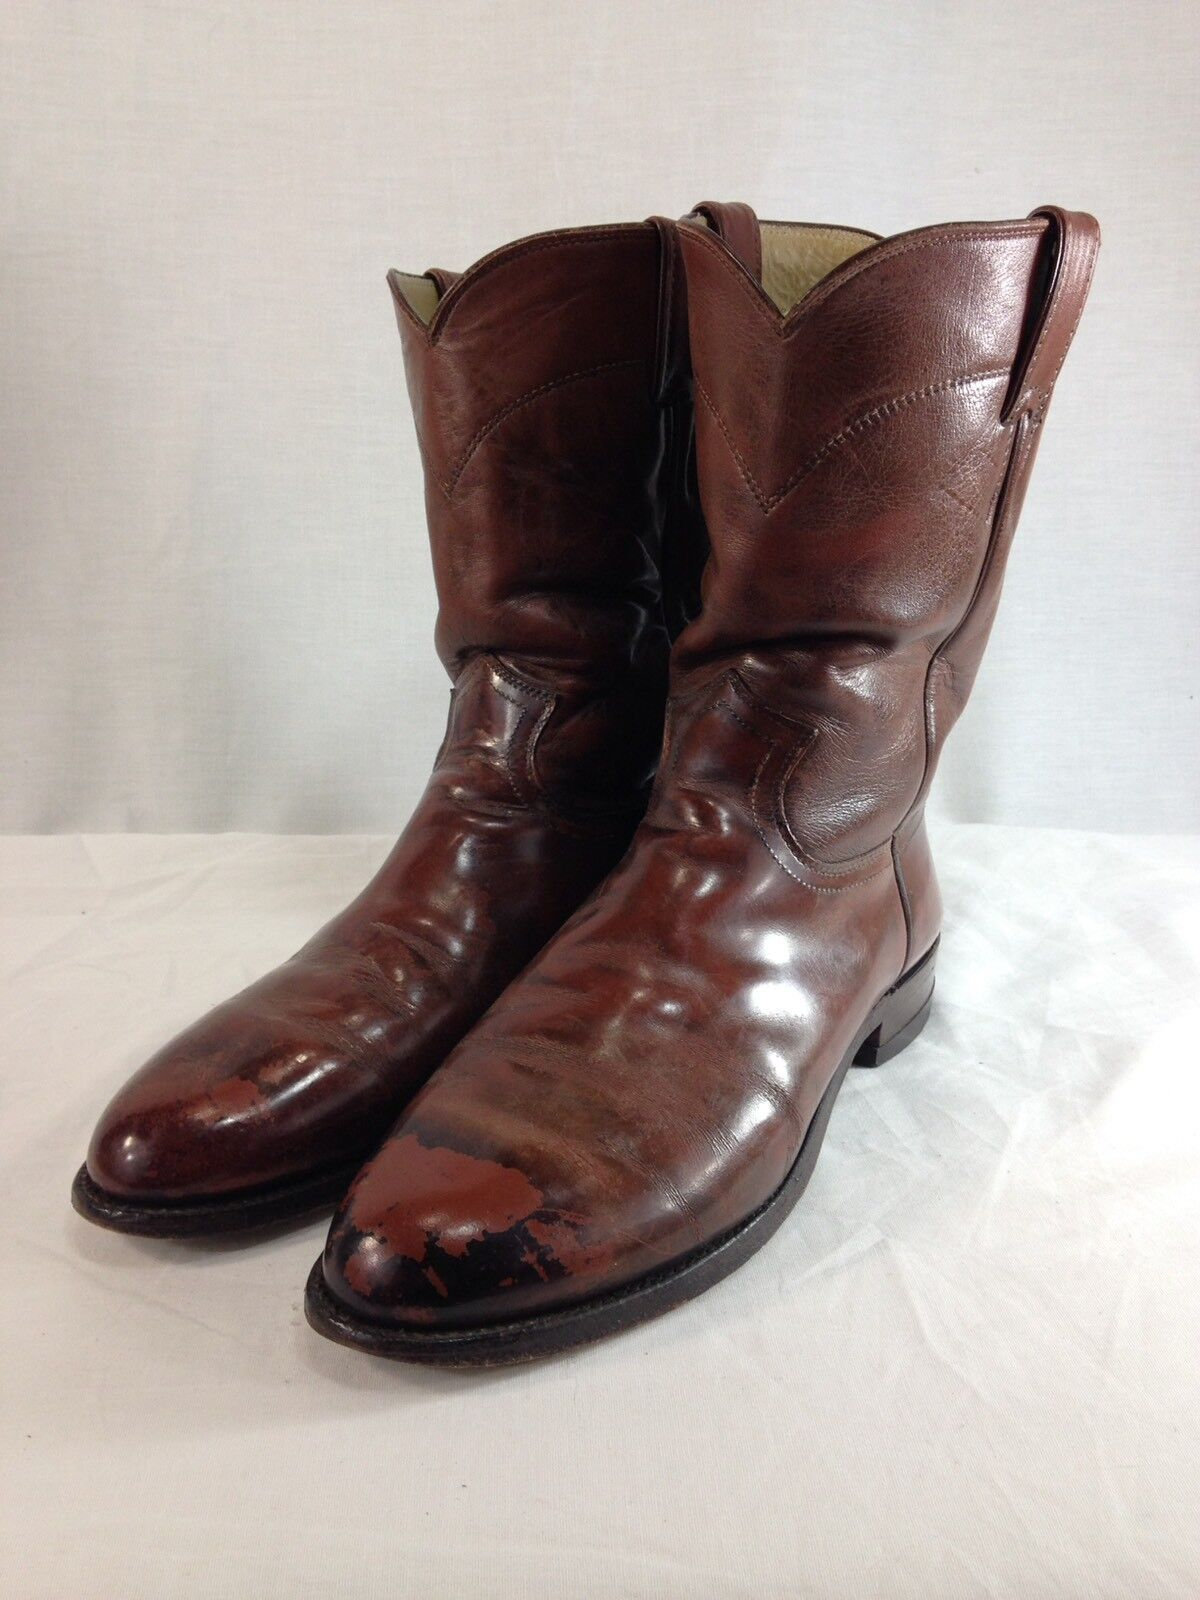 db887a403ffb7 Danner Tanicus Boots Men 13 Wide EE model Coyote Brown 55316 No Steel Toe 8  inch